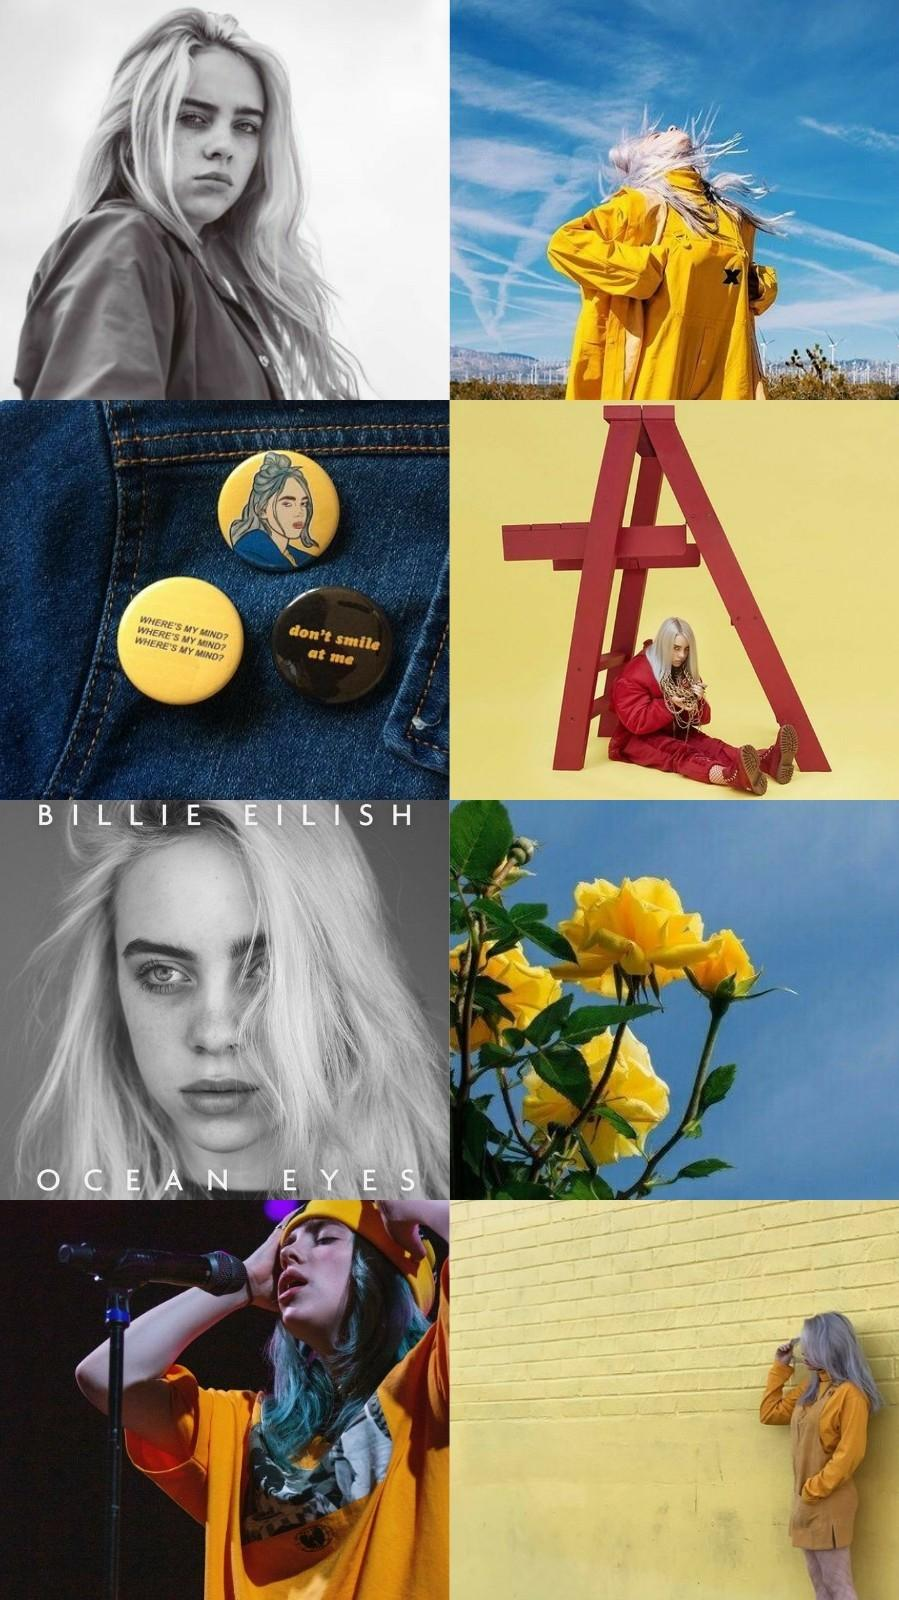 Billie Eilish Aesthetic Pictures Wallpapers - Wallpaper Cave